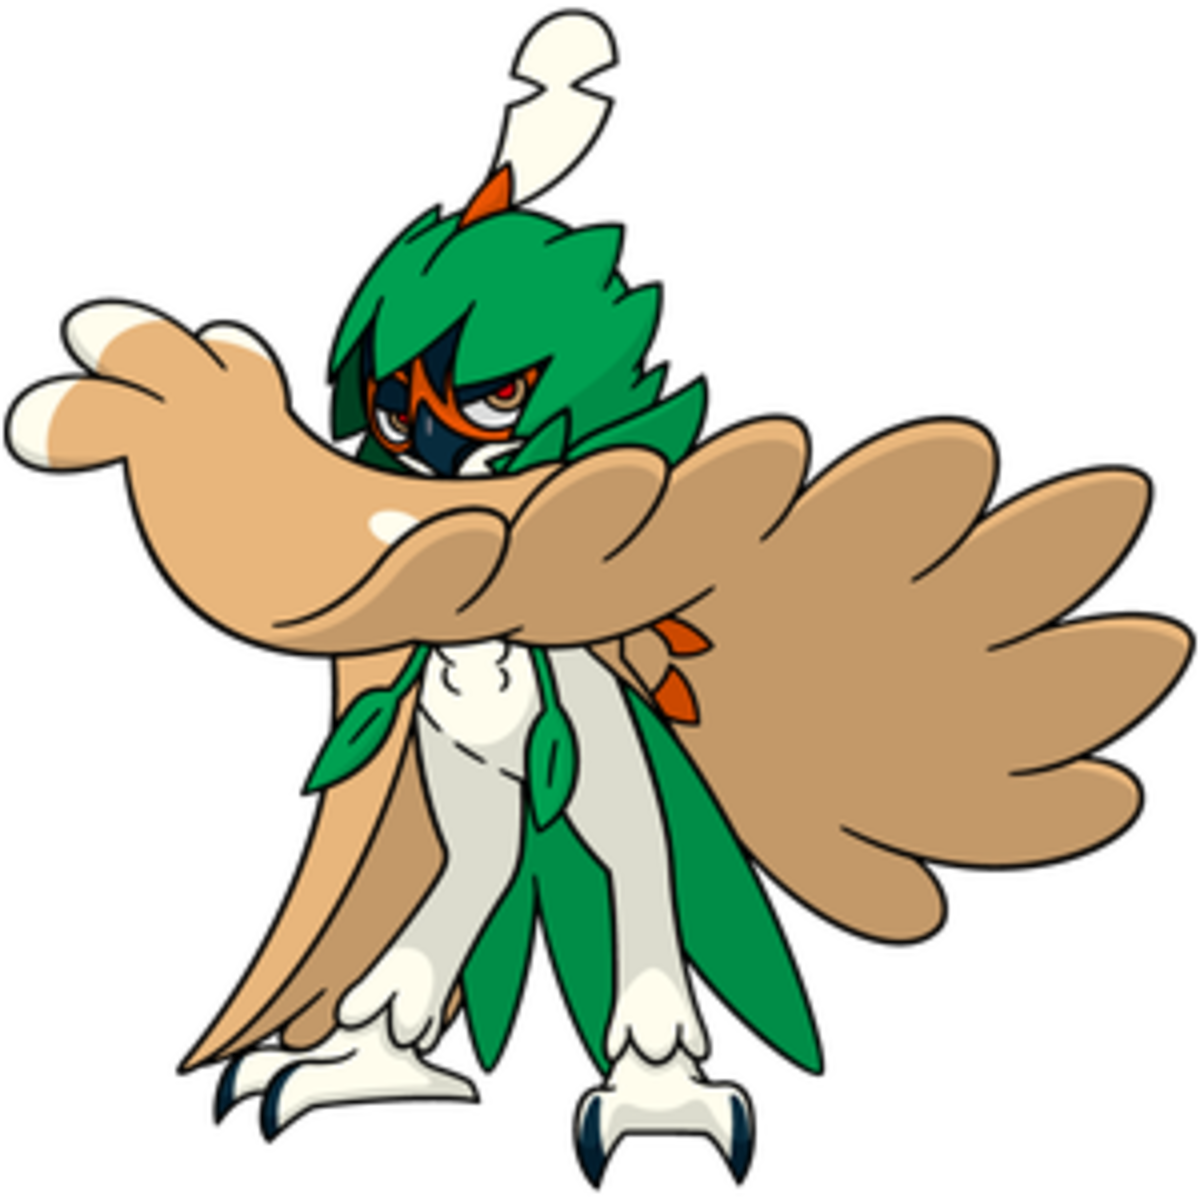 HD Decidueye Png Transparent PNG Image Download.